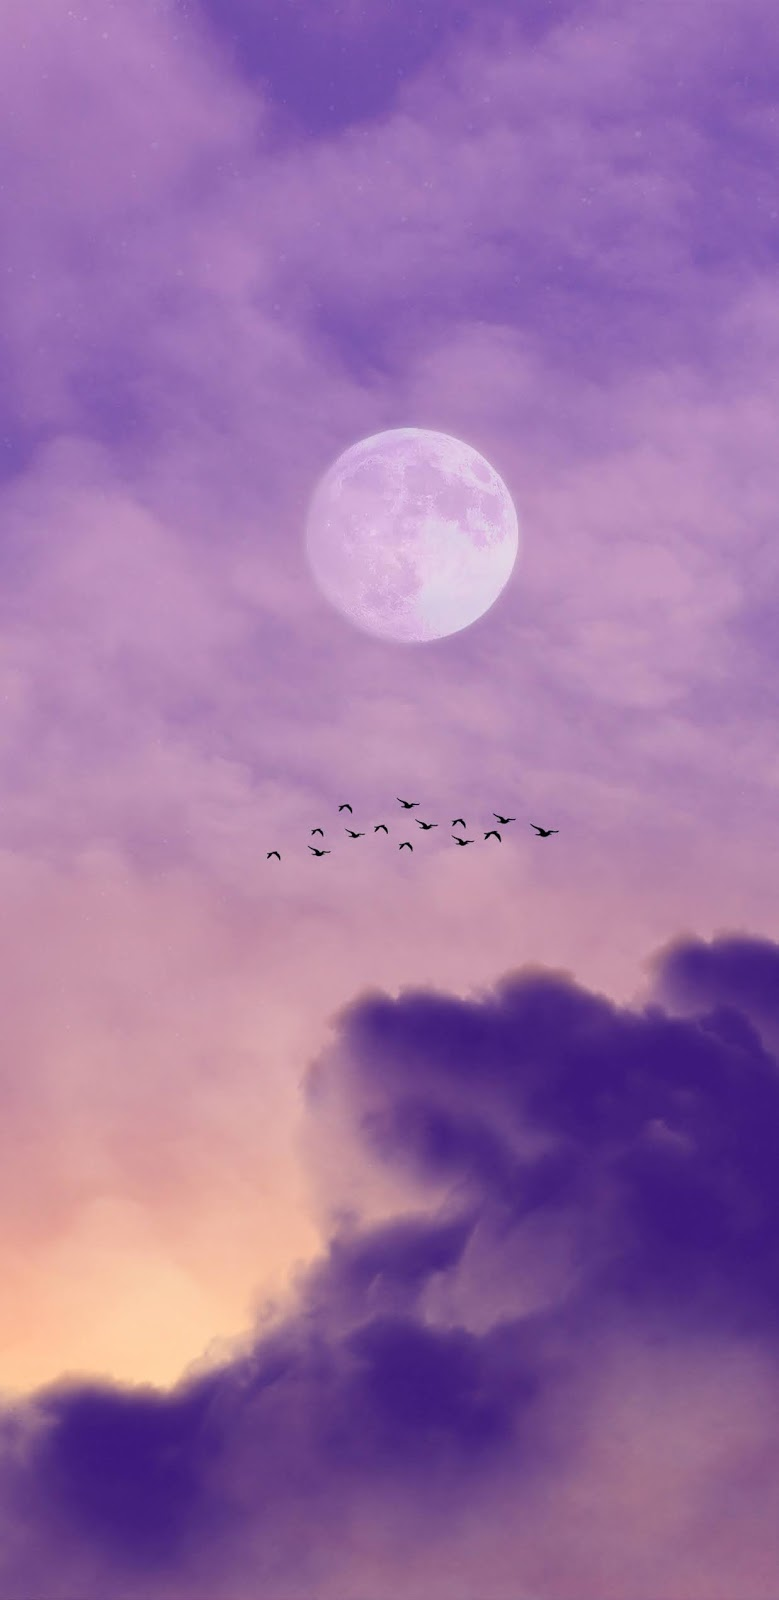 Full moon in the twilight sky